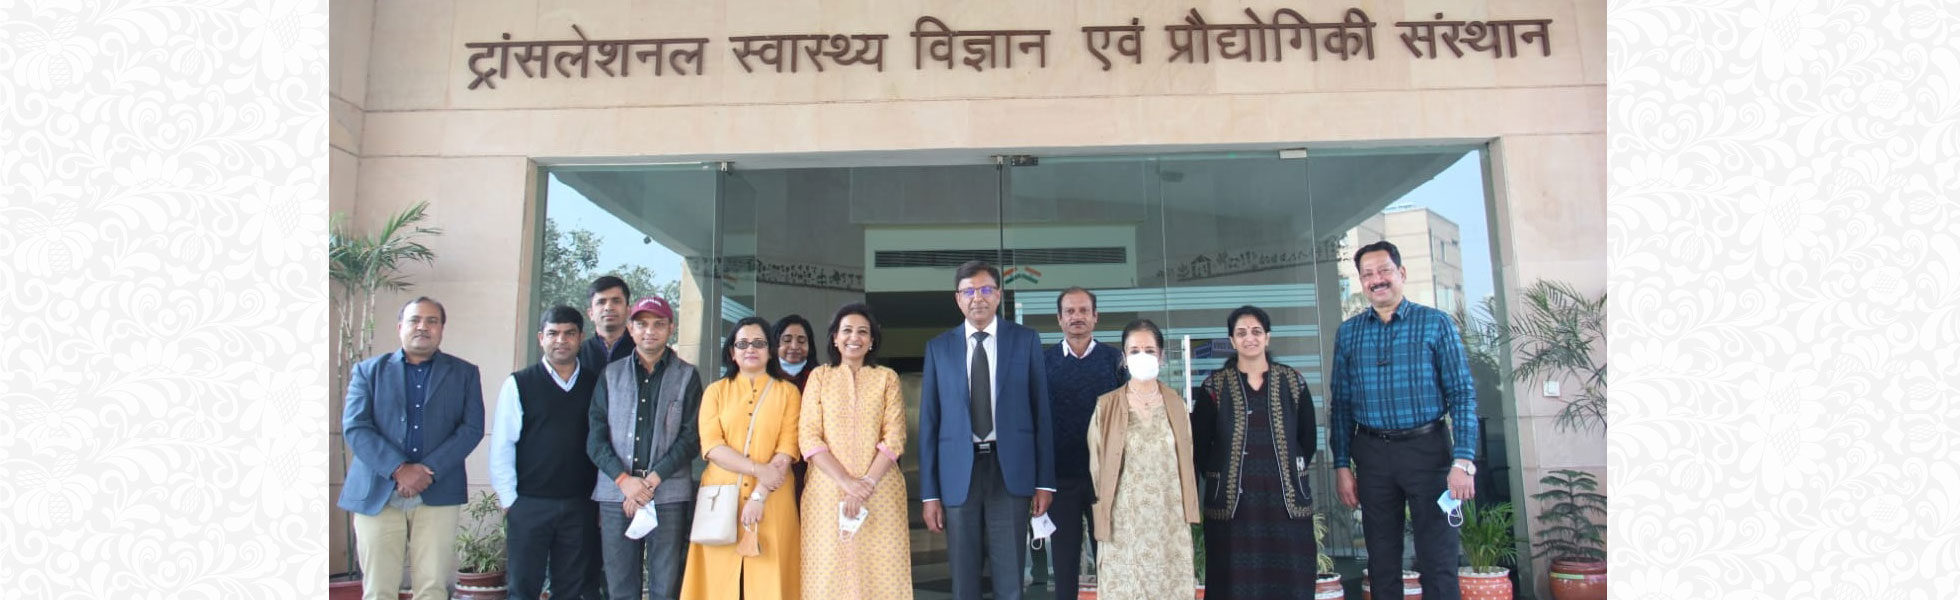 Prof. Pramod Kumar Garg joined as Executive Director of Translational Health Science and Technology Institute (THSTI), Faridabad w.e.f. 14th February 2021